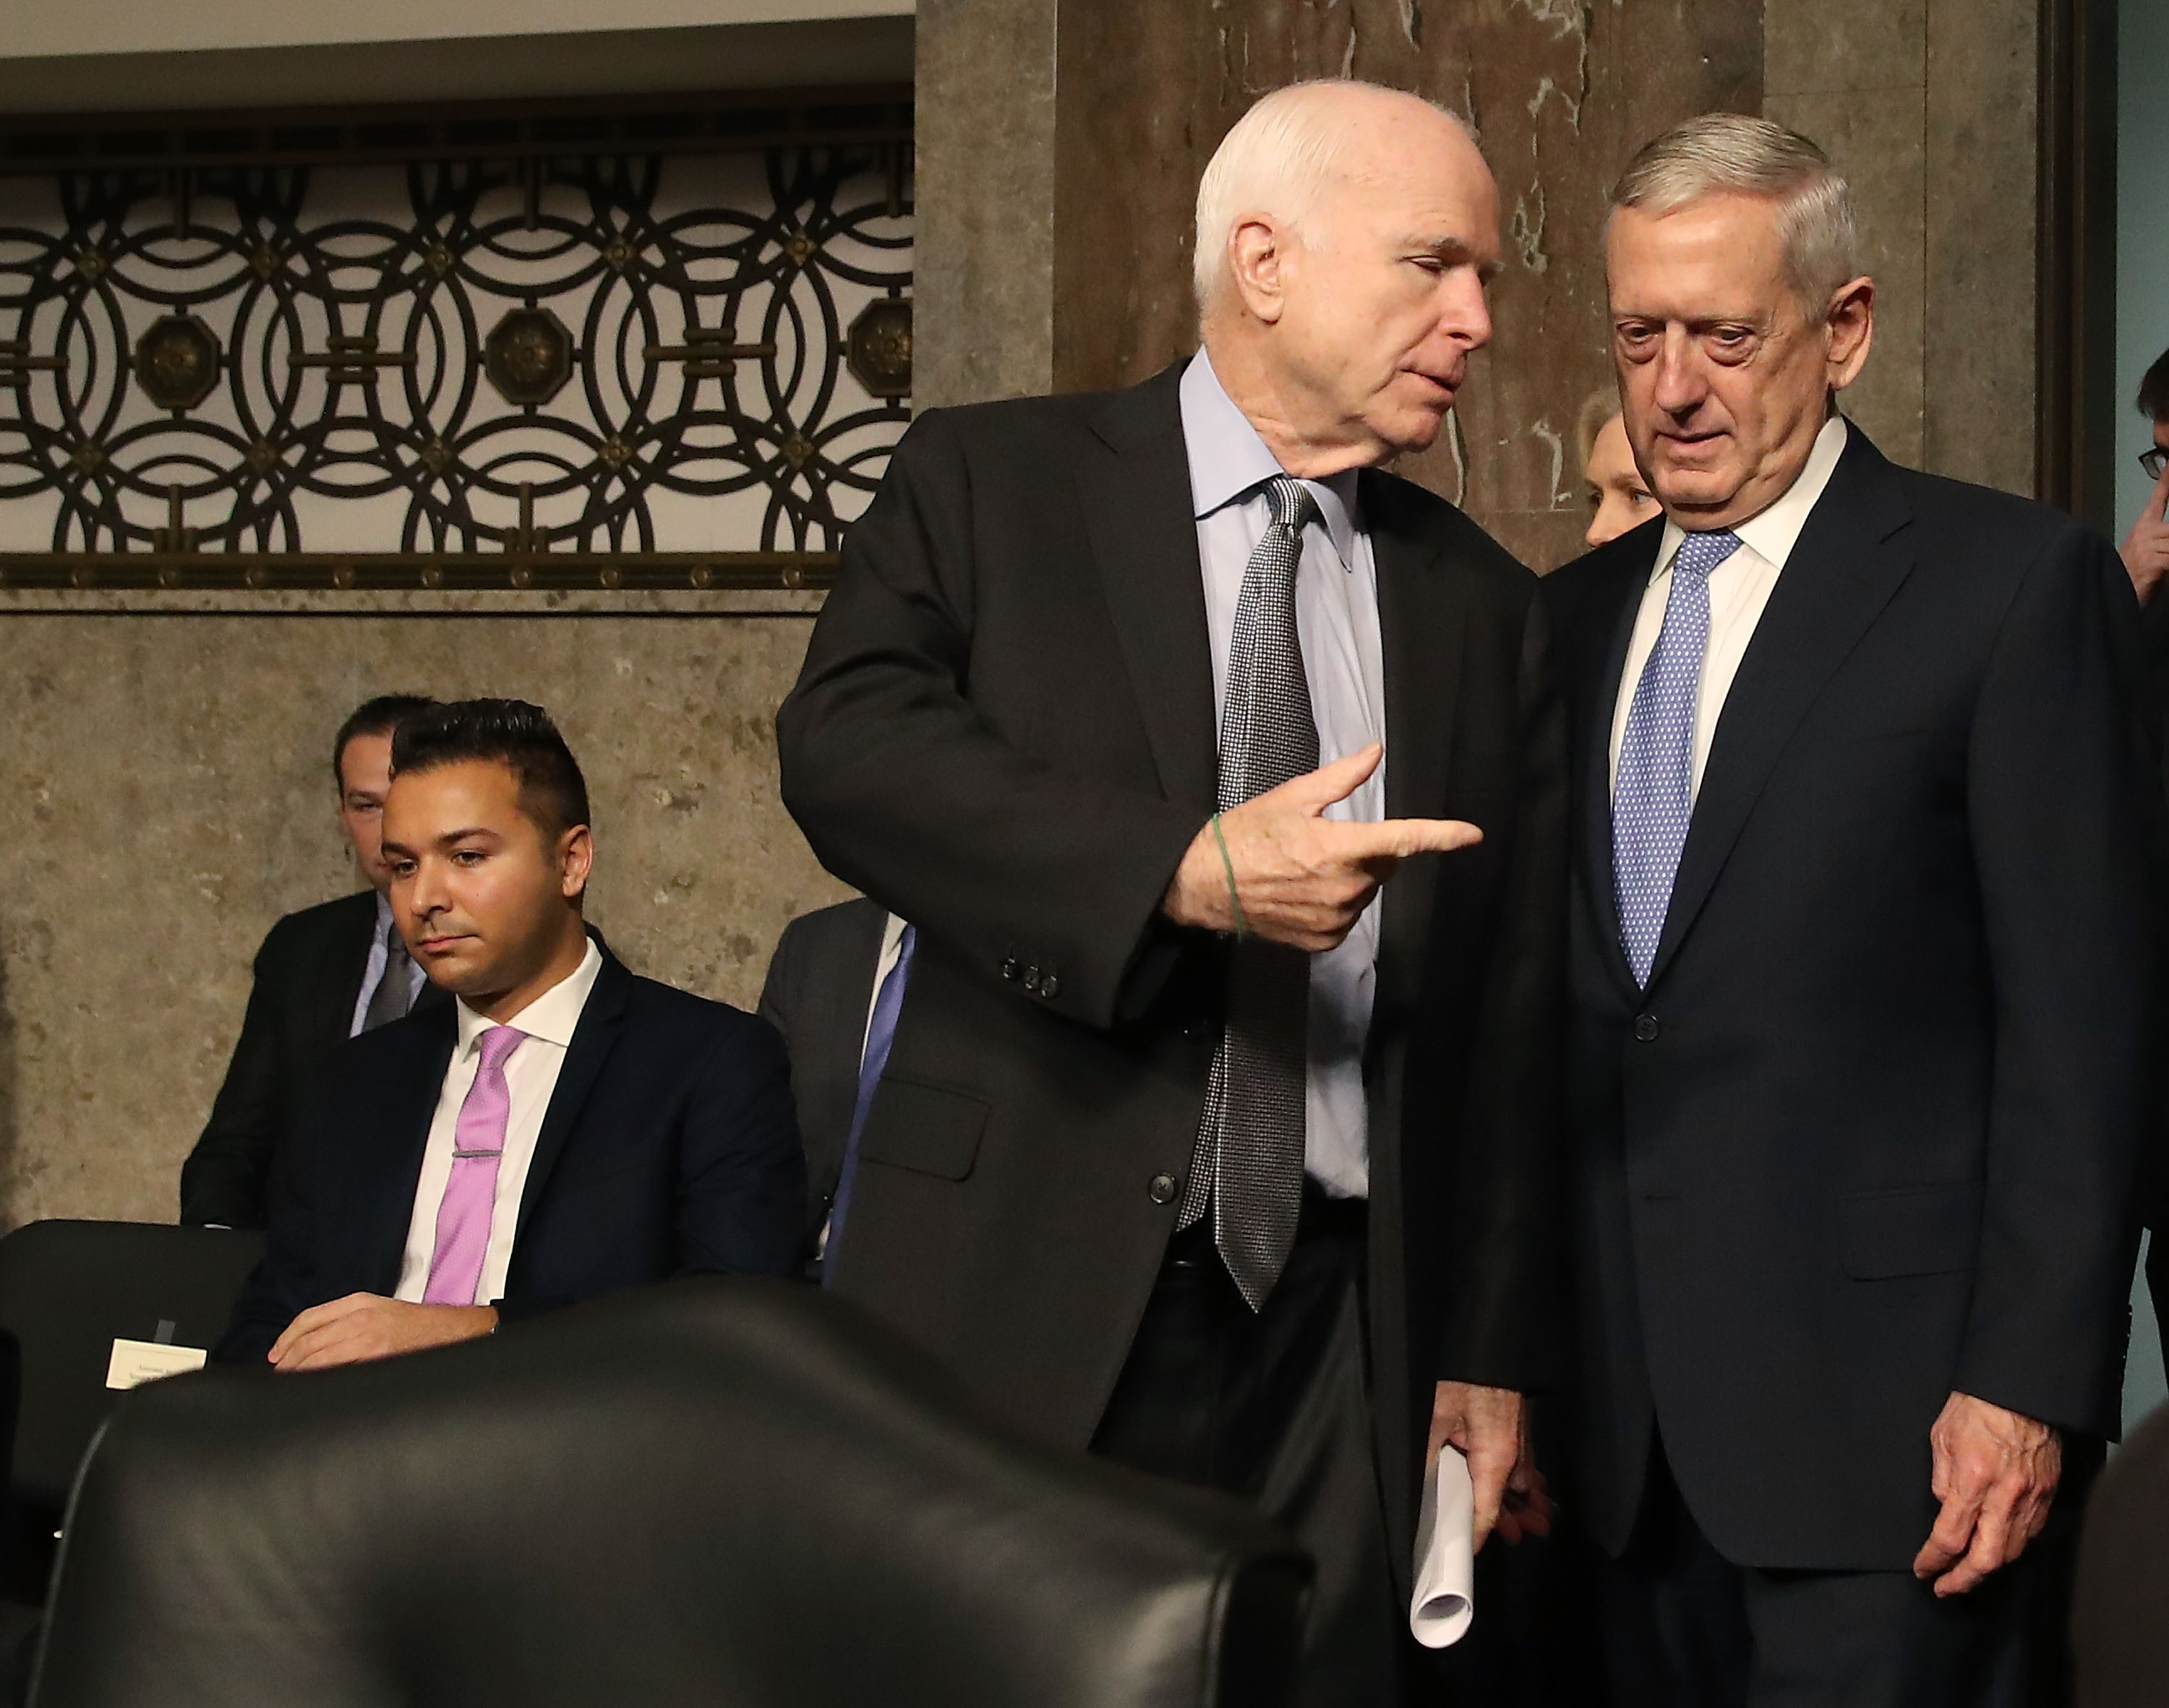 Image result for PHOTOS OF MCCAIN GRAHAM AND GENERAL MATTIS